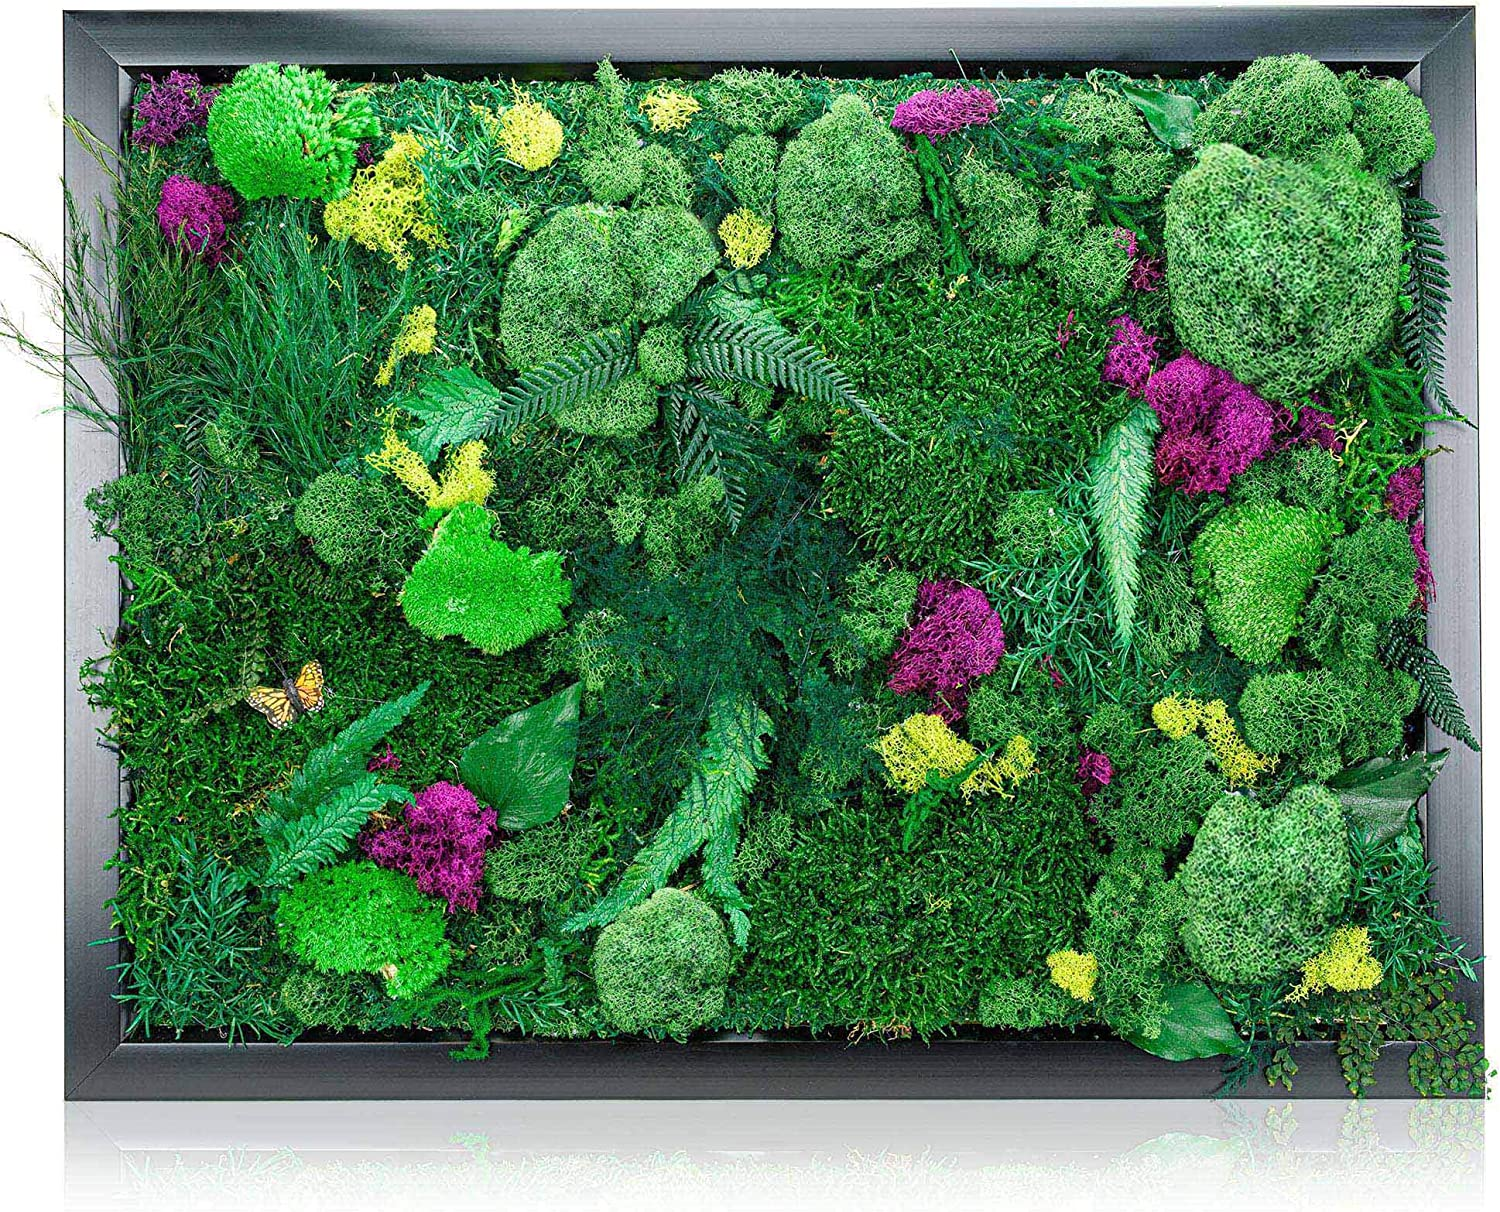 """Natural Plant Wall Art Real Plants and Moss Decorations (12"""" x 16"""") Indoor Moss Backdrop With Exotic French Moss And Ferns-Green Decor To Bring Nature Into Your Home And Work Space-Office Plants"""